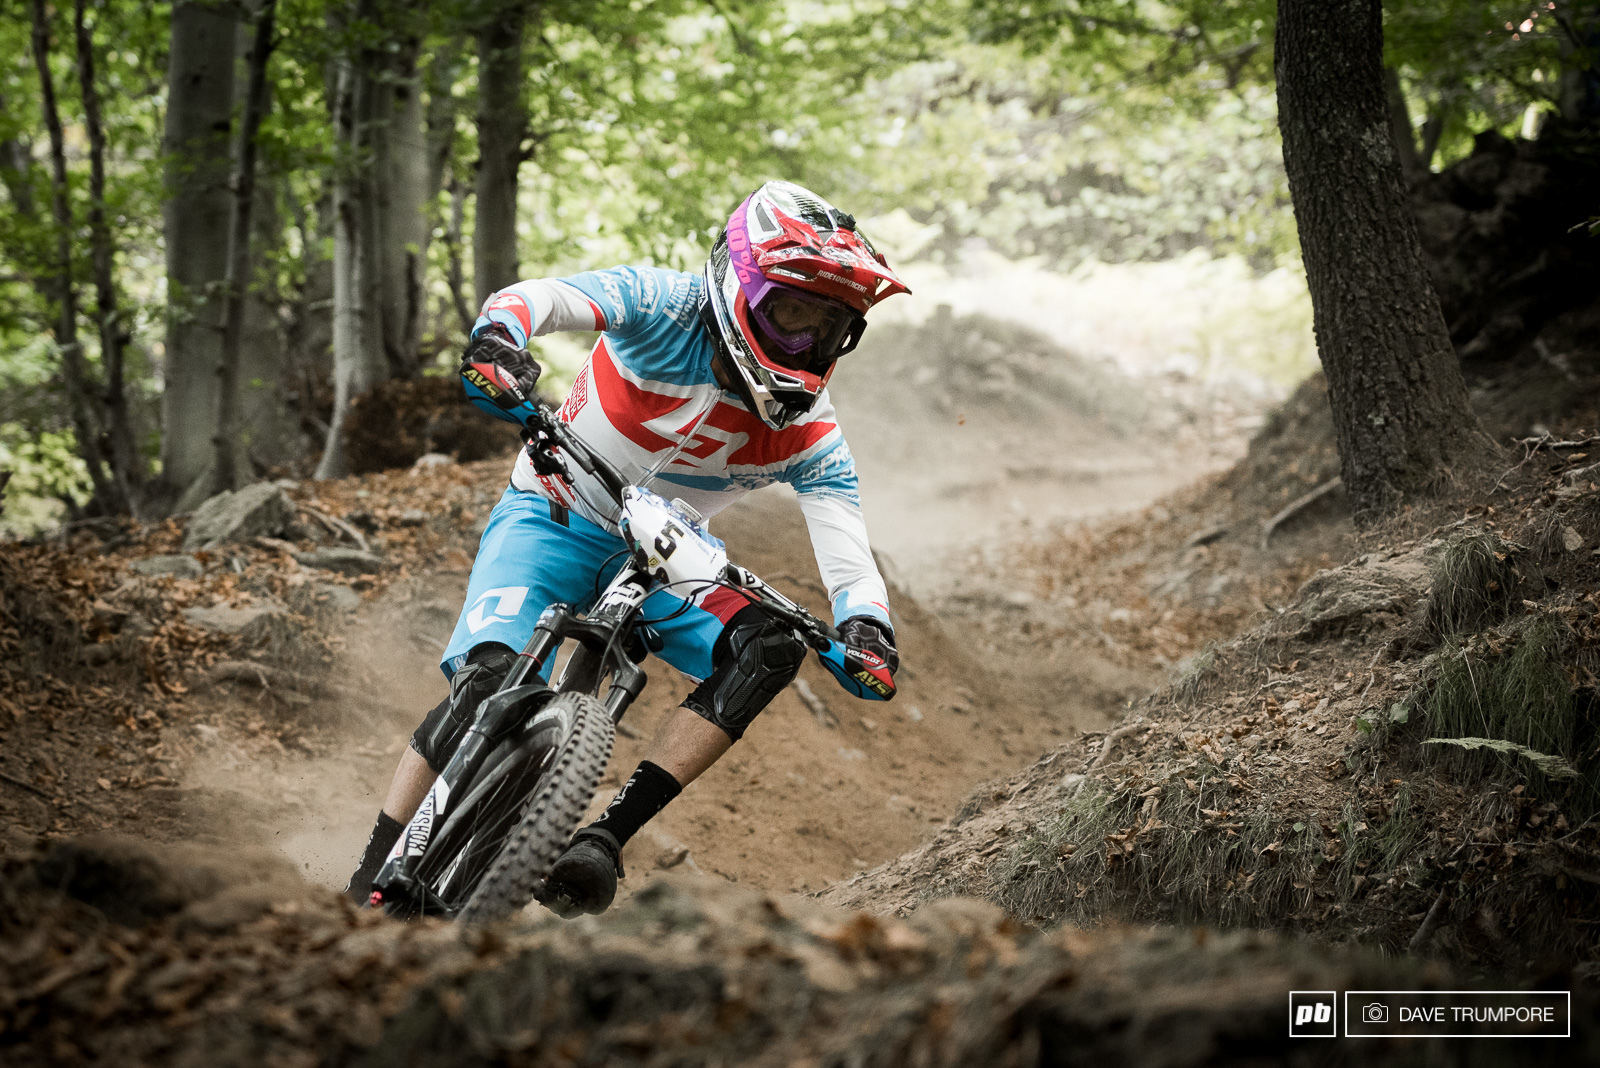 After a strong showing on Saturday Nico would crash twice to start the second day and eventually was forced to retire from the race. Rumor has it this may have also been one of his final EWS races as well.